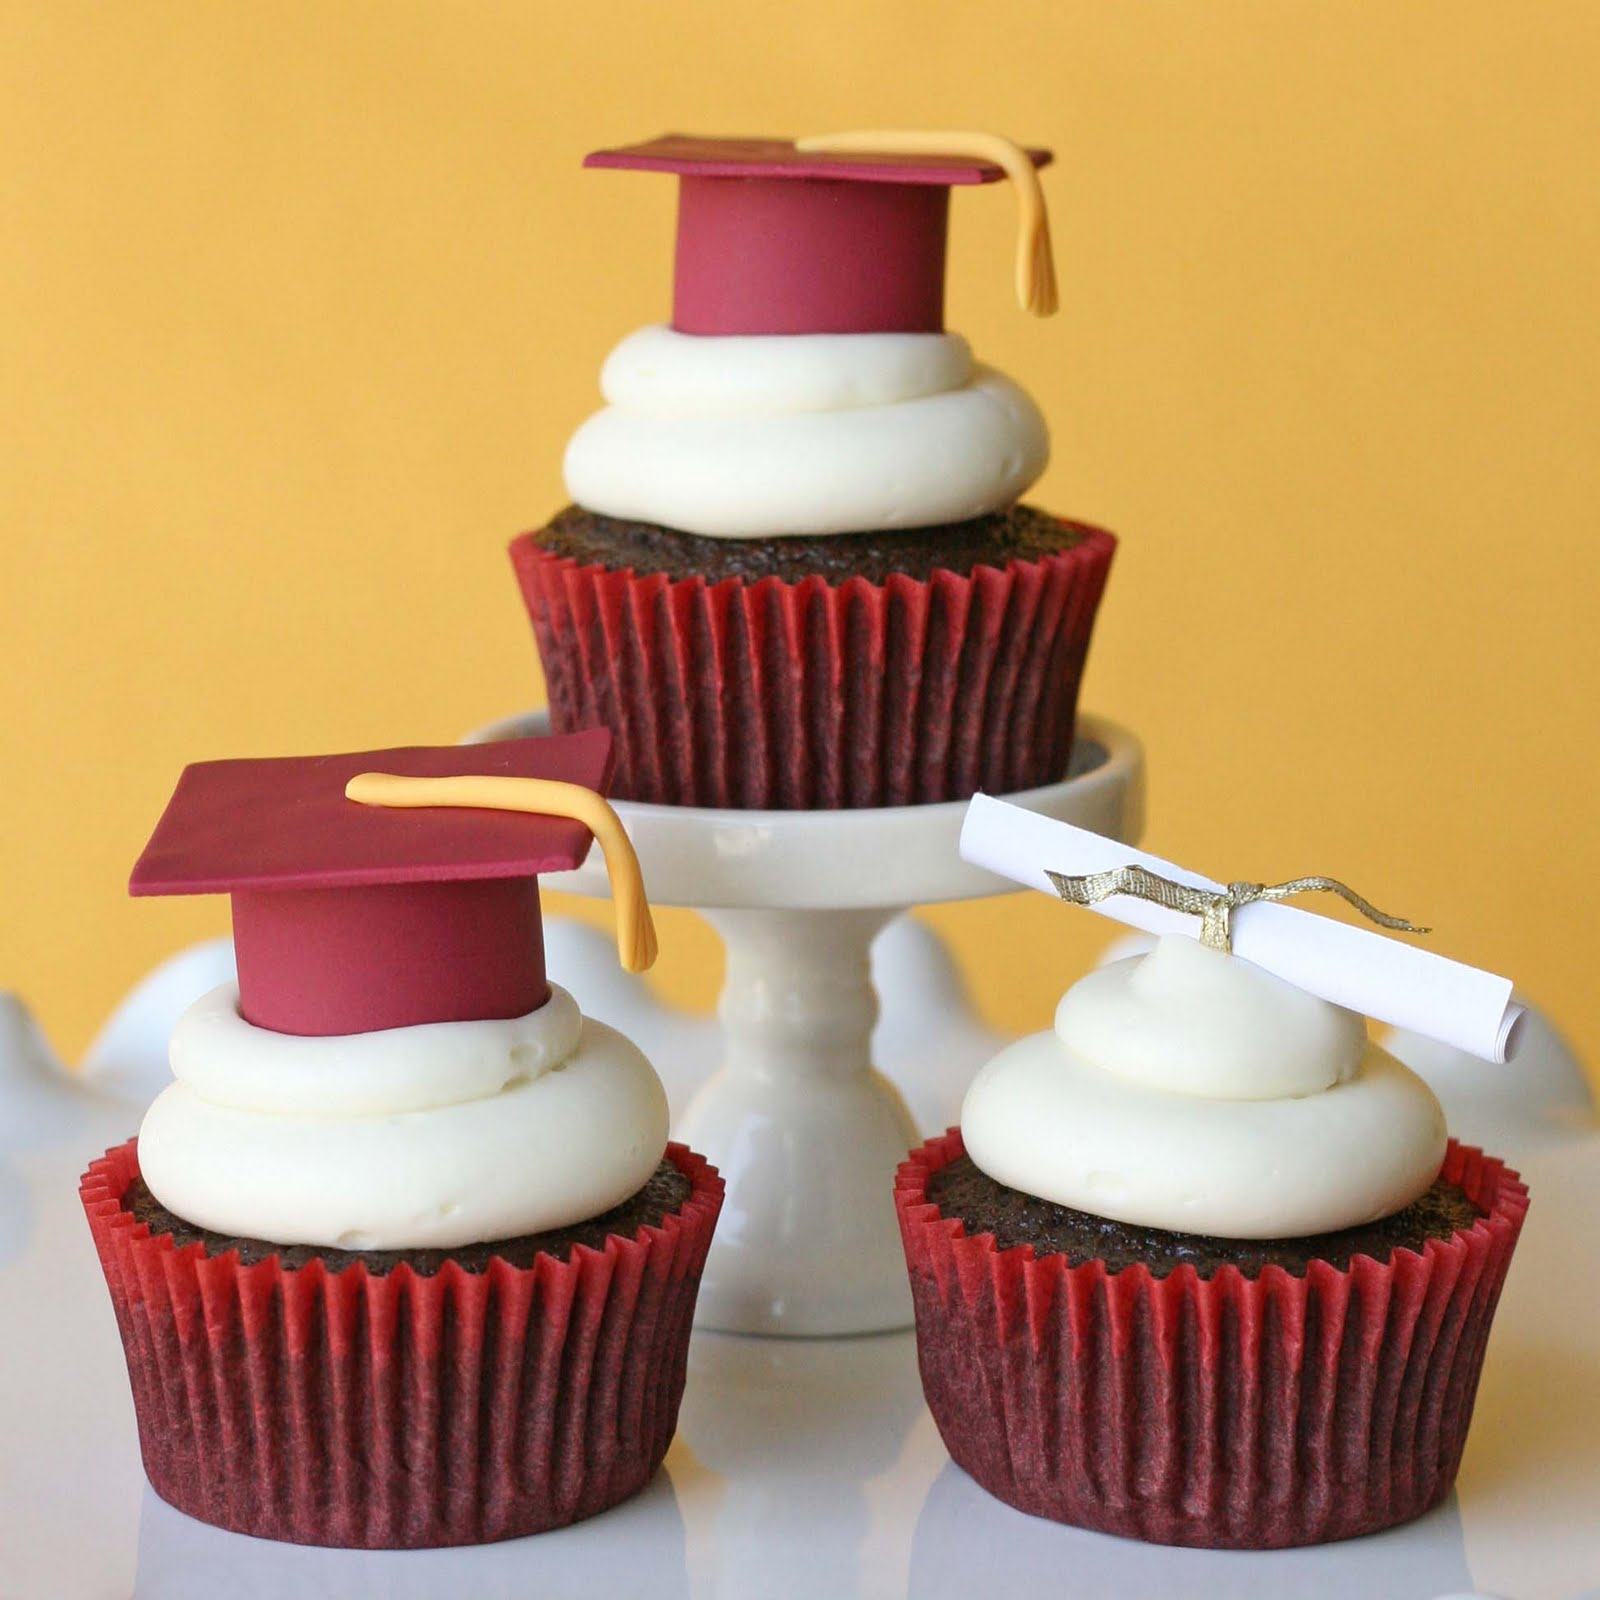 Graduation Cupcakes and How To Make Fondant Graduation Caps